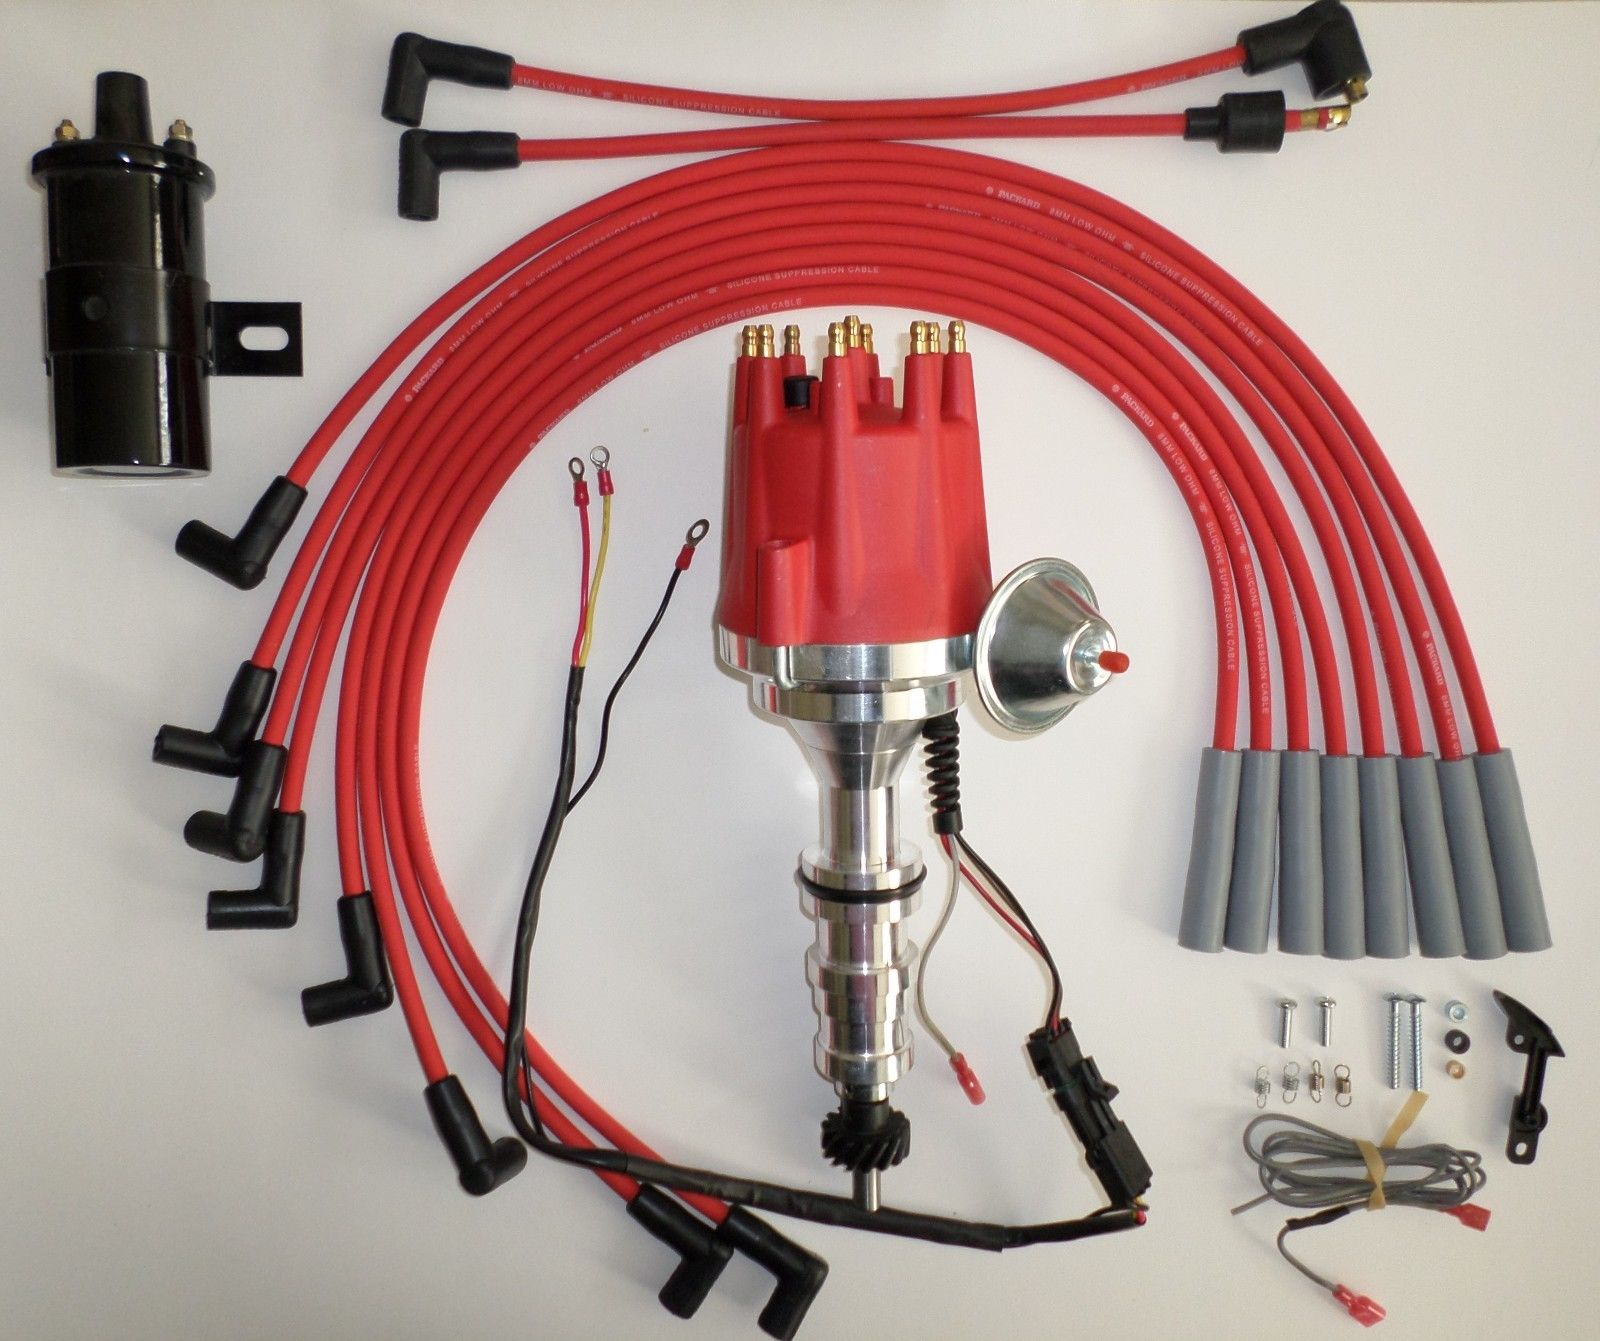 small cap ford fe 352, 390, 427 & 428 red hei distributor 45k coil spark  plug wires - swapmeetparts  swapmeetparts